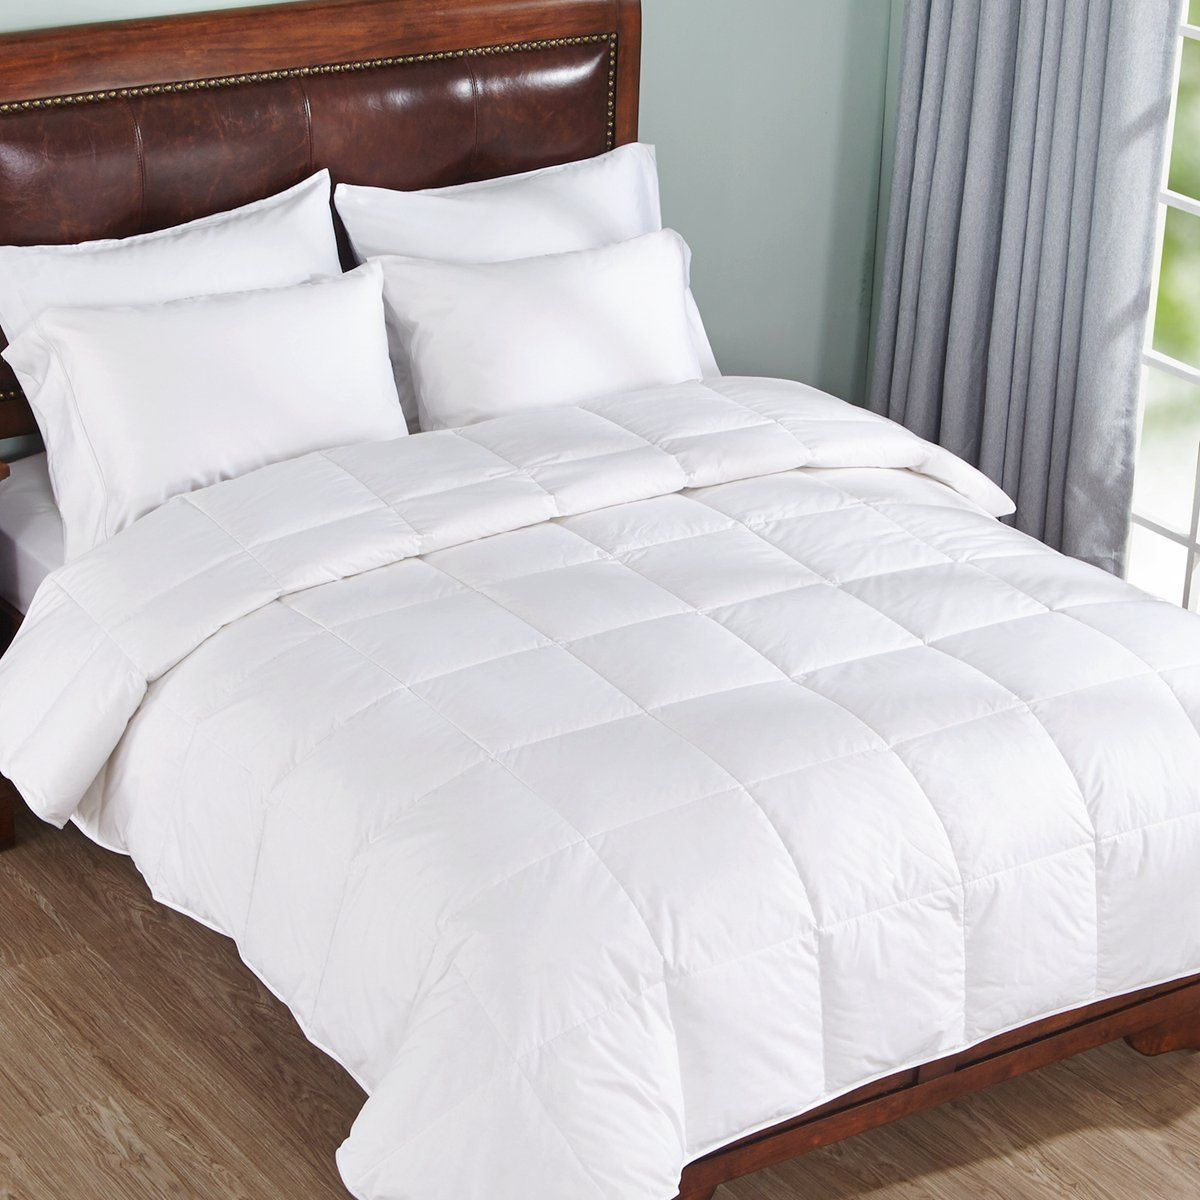 Kuber Industries Reversible Single Bed King Size Comforter/Duvet for Winters; Color - White, 230 x 150 Cm